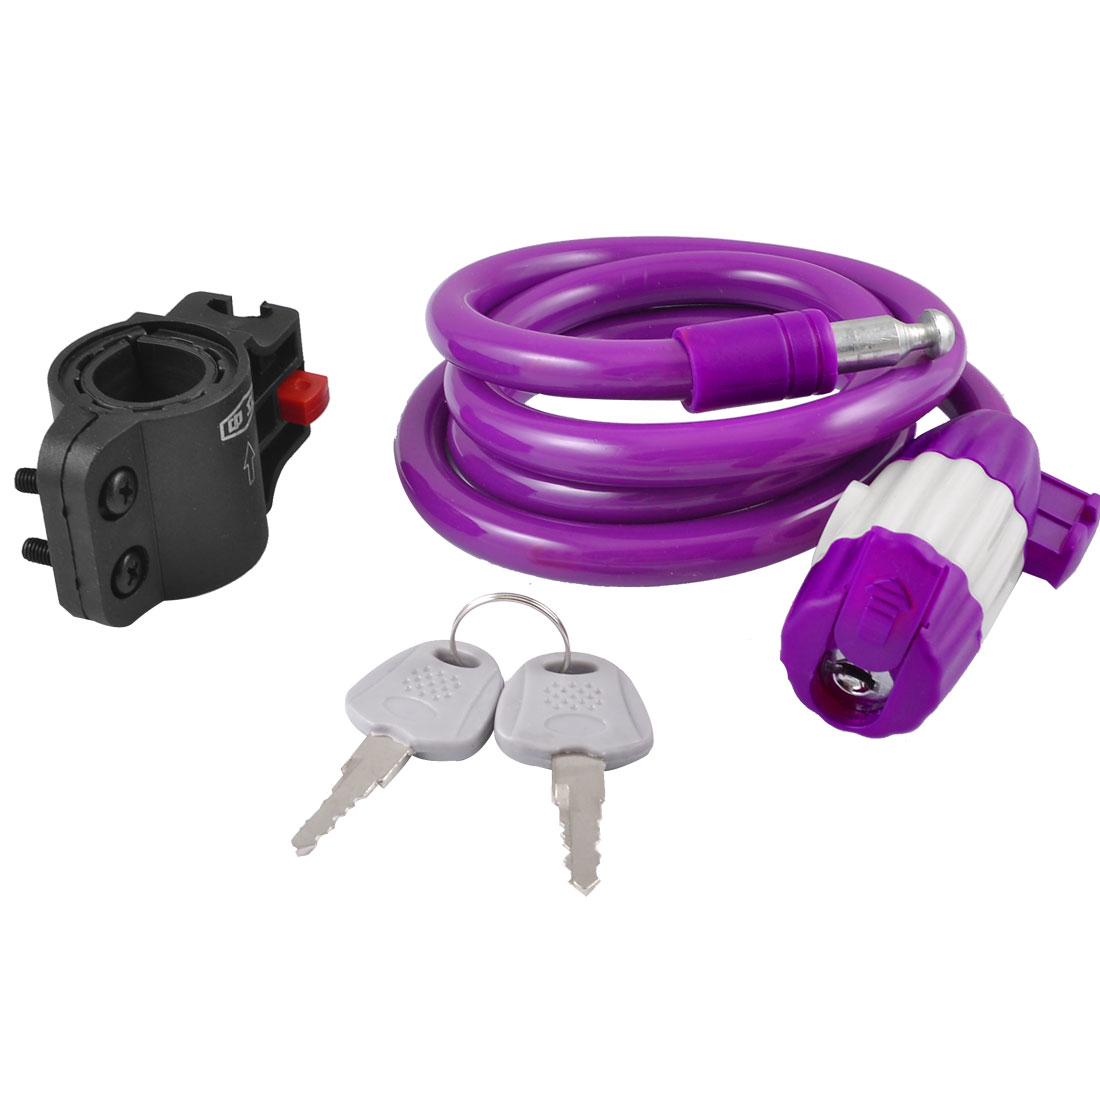 3.9Ft Purple Bike Motorcycle Safety Steel Wire Coiled Cable Lock + 2 Keys